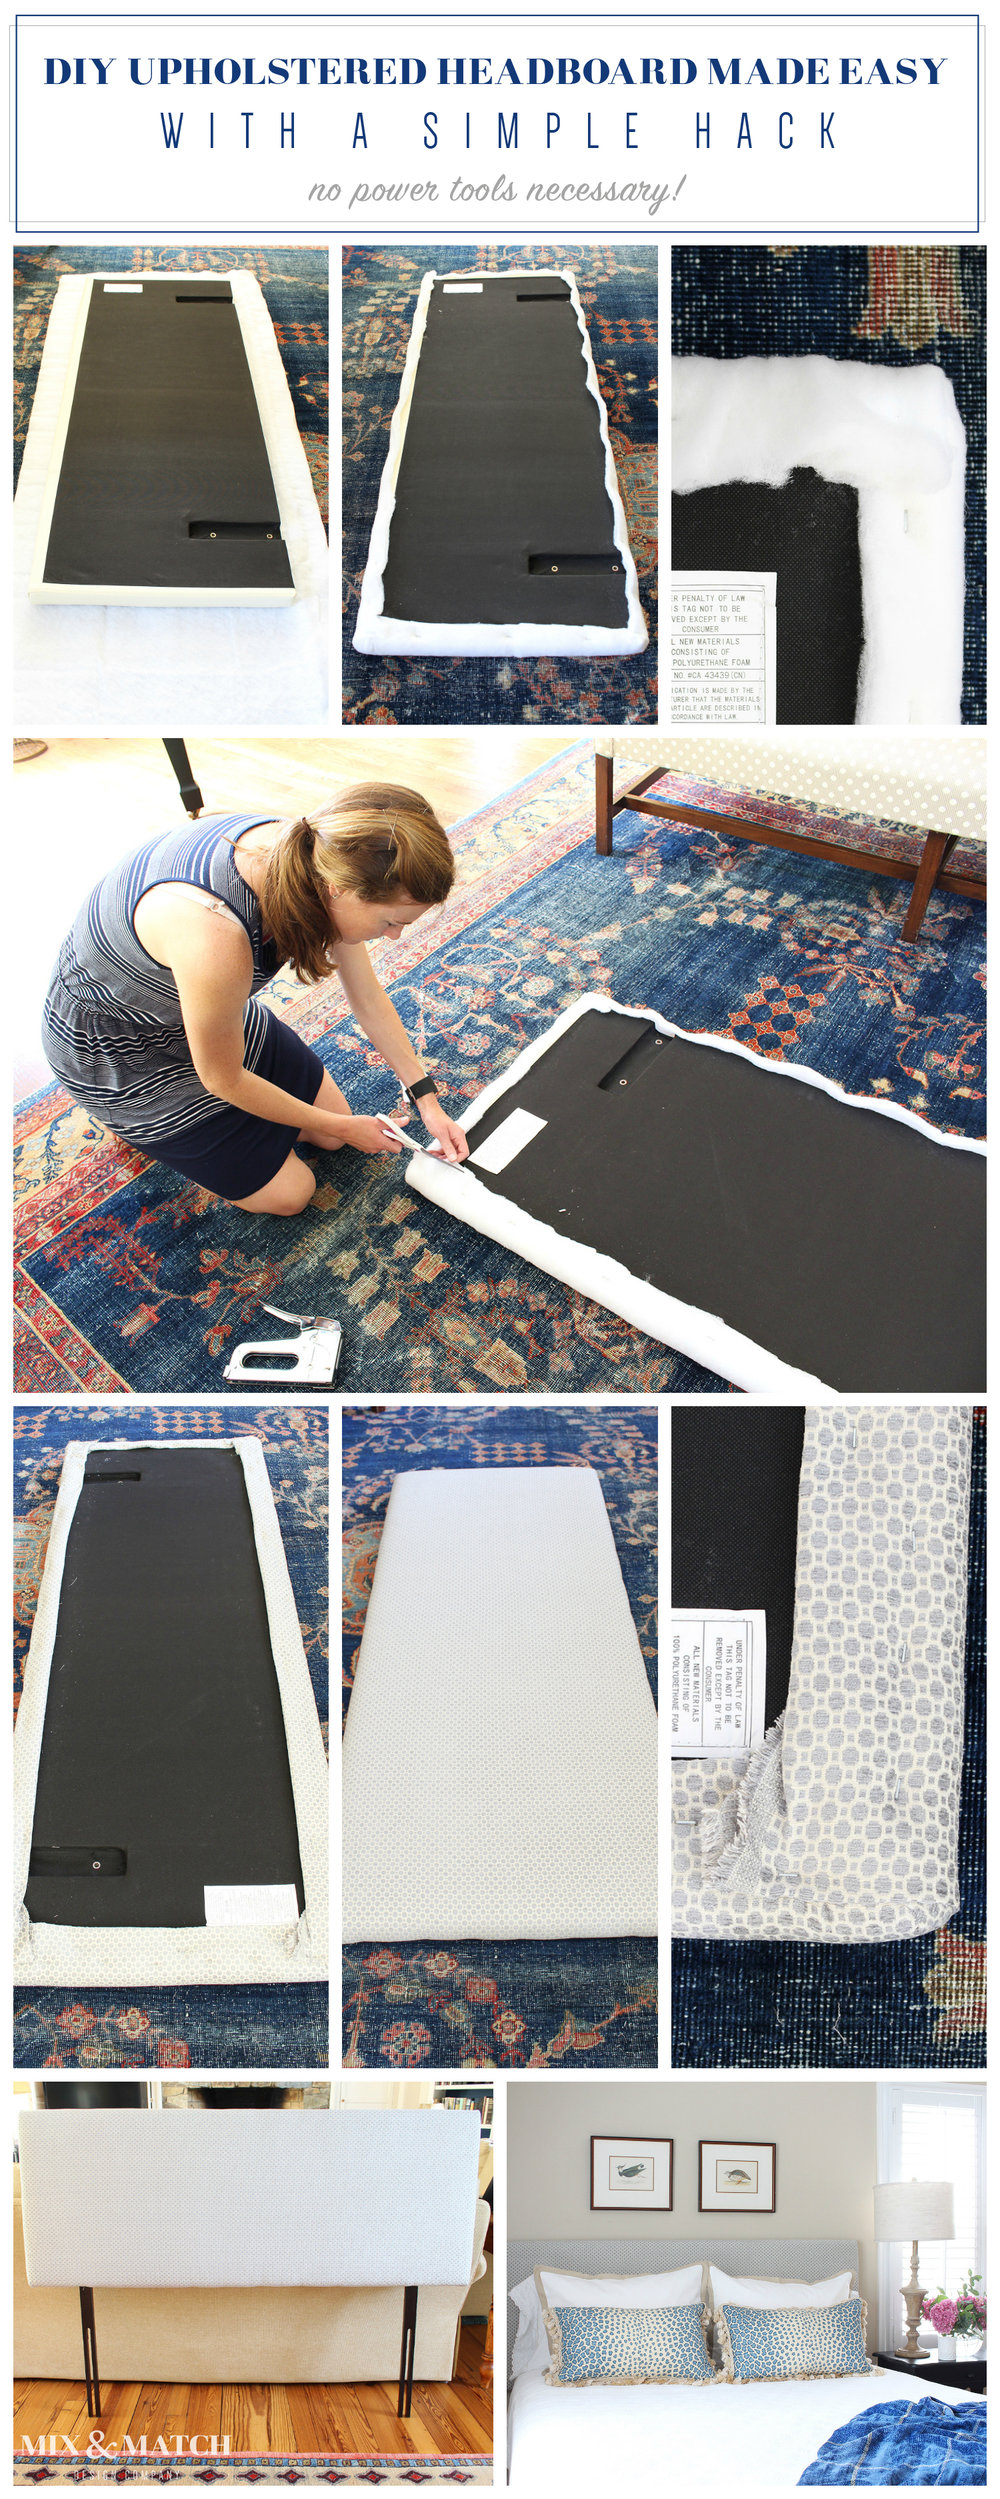 A step-by-step tutorial on how to DIY an upholstered headboard. // how to upholster a headboard